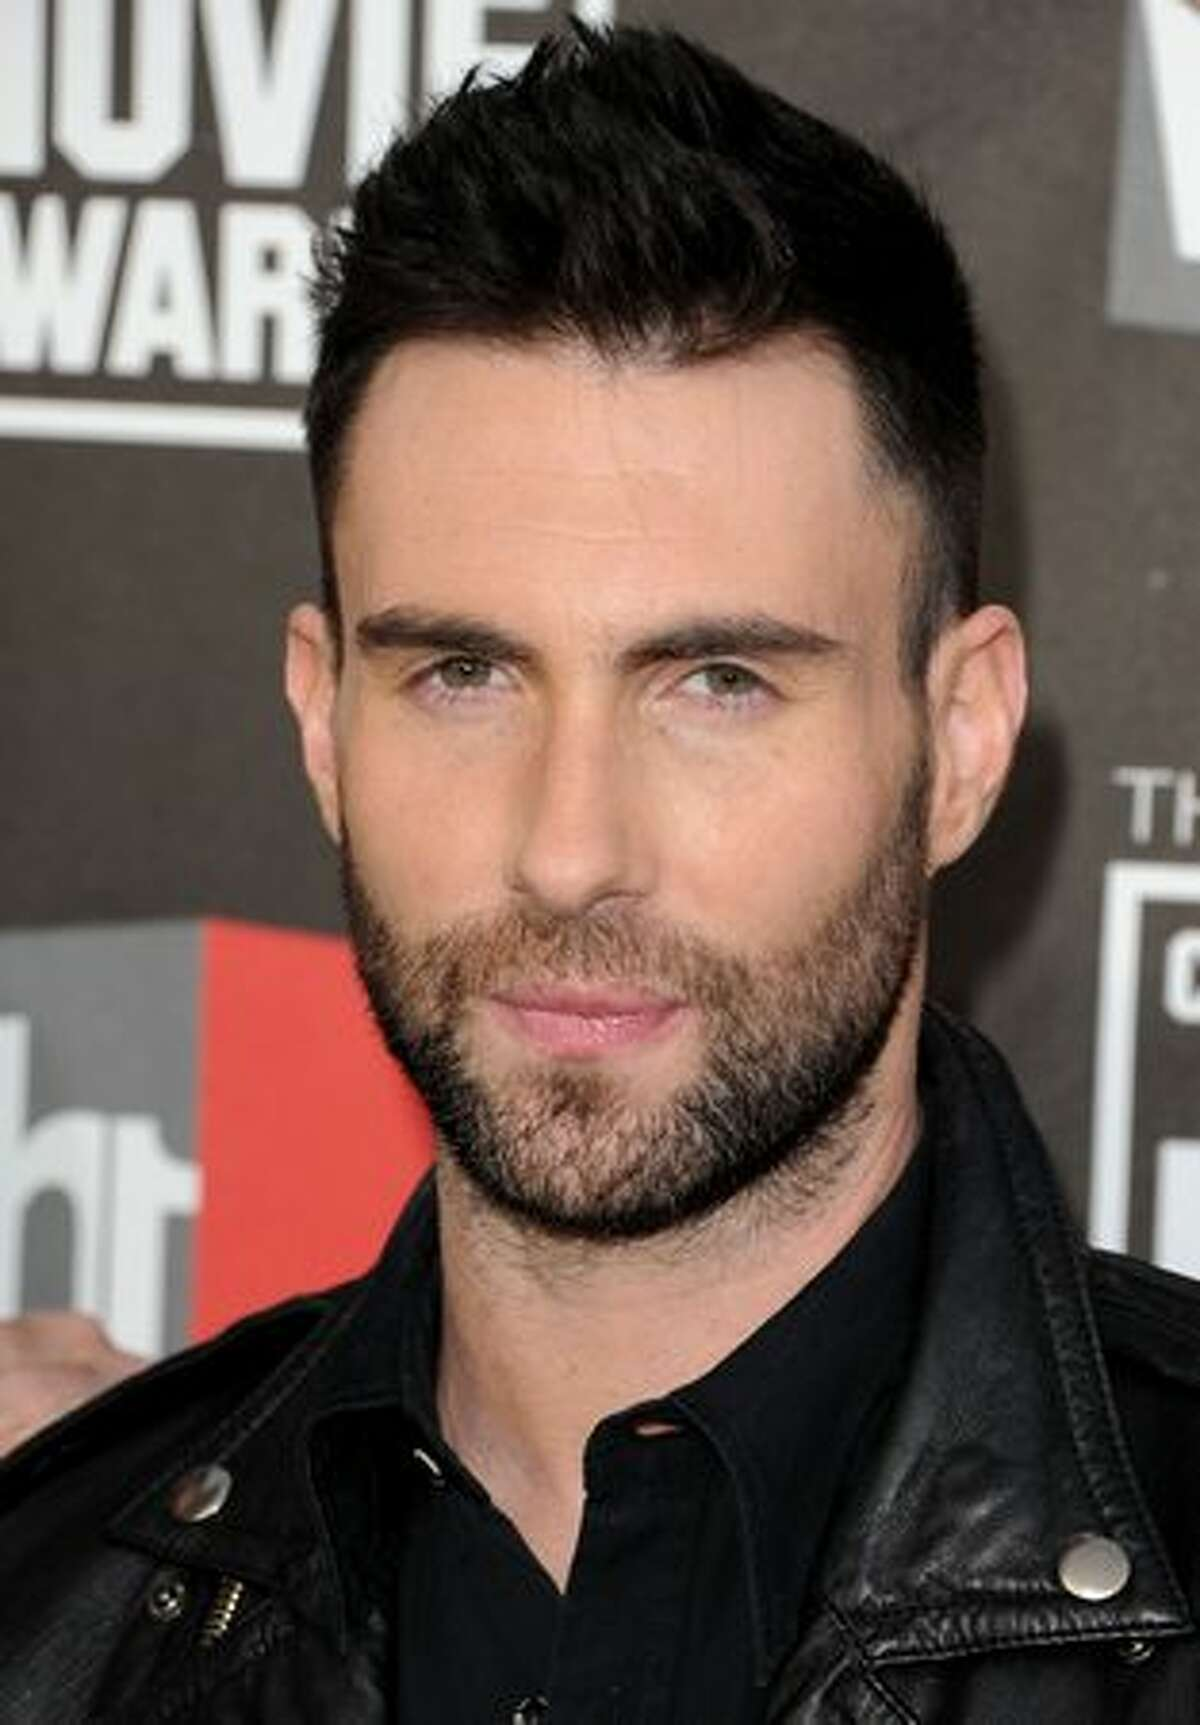 Singer Adam Levine from the musical group Maroon 5 arrives.